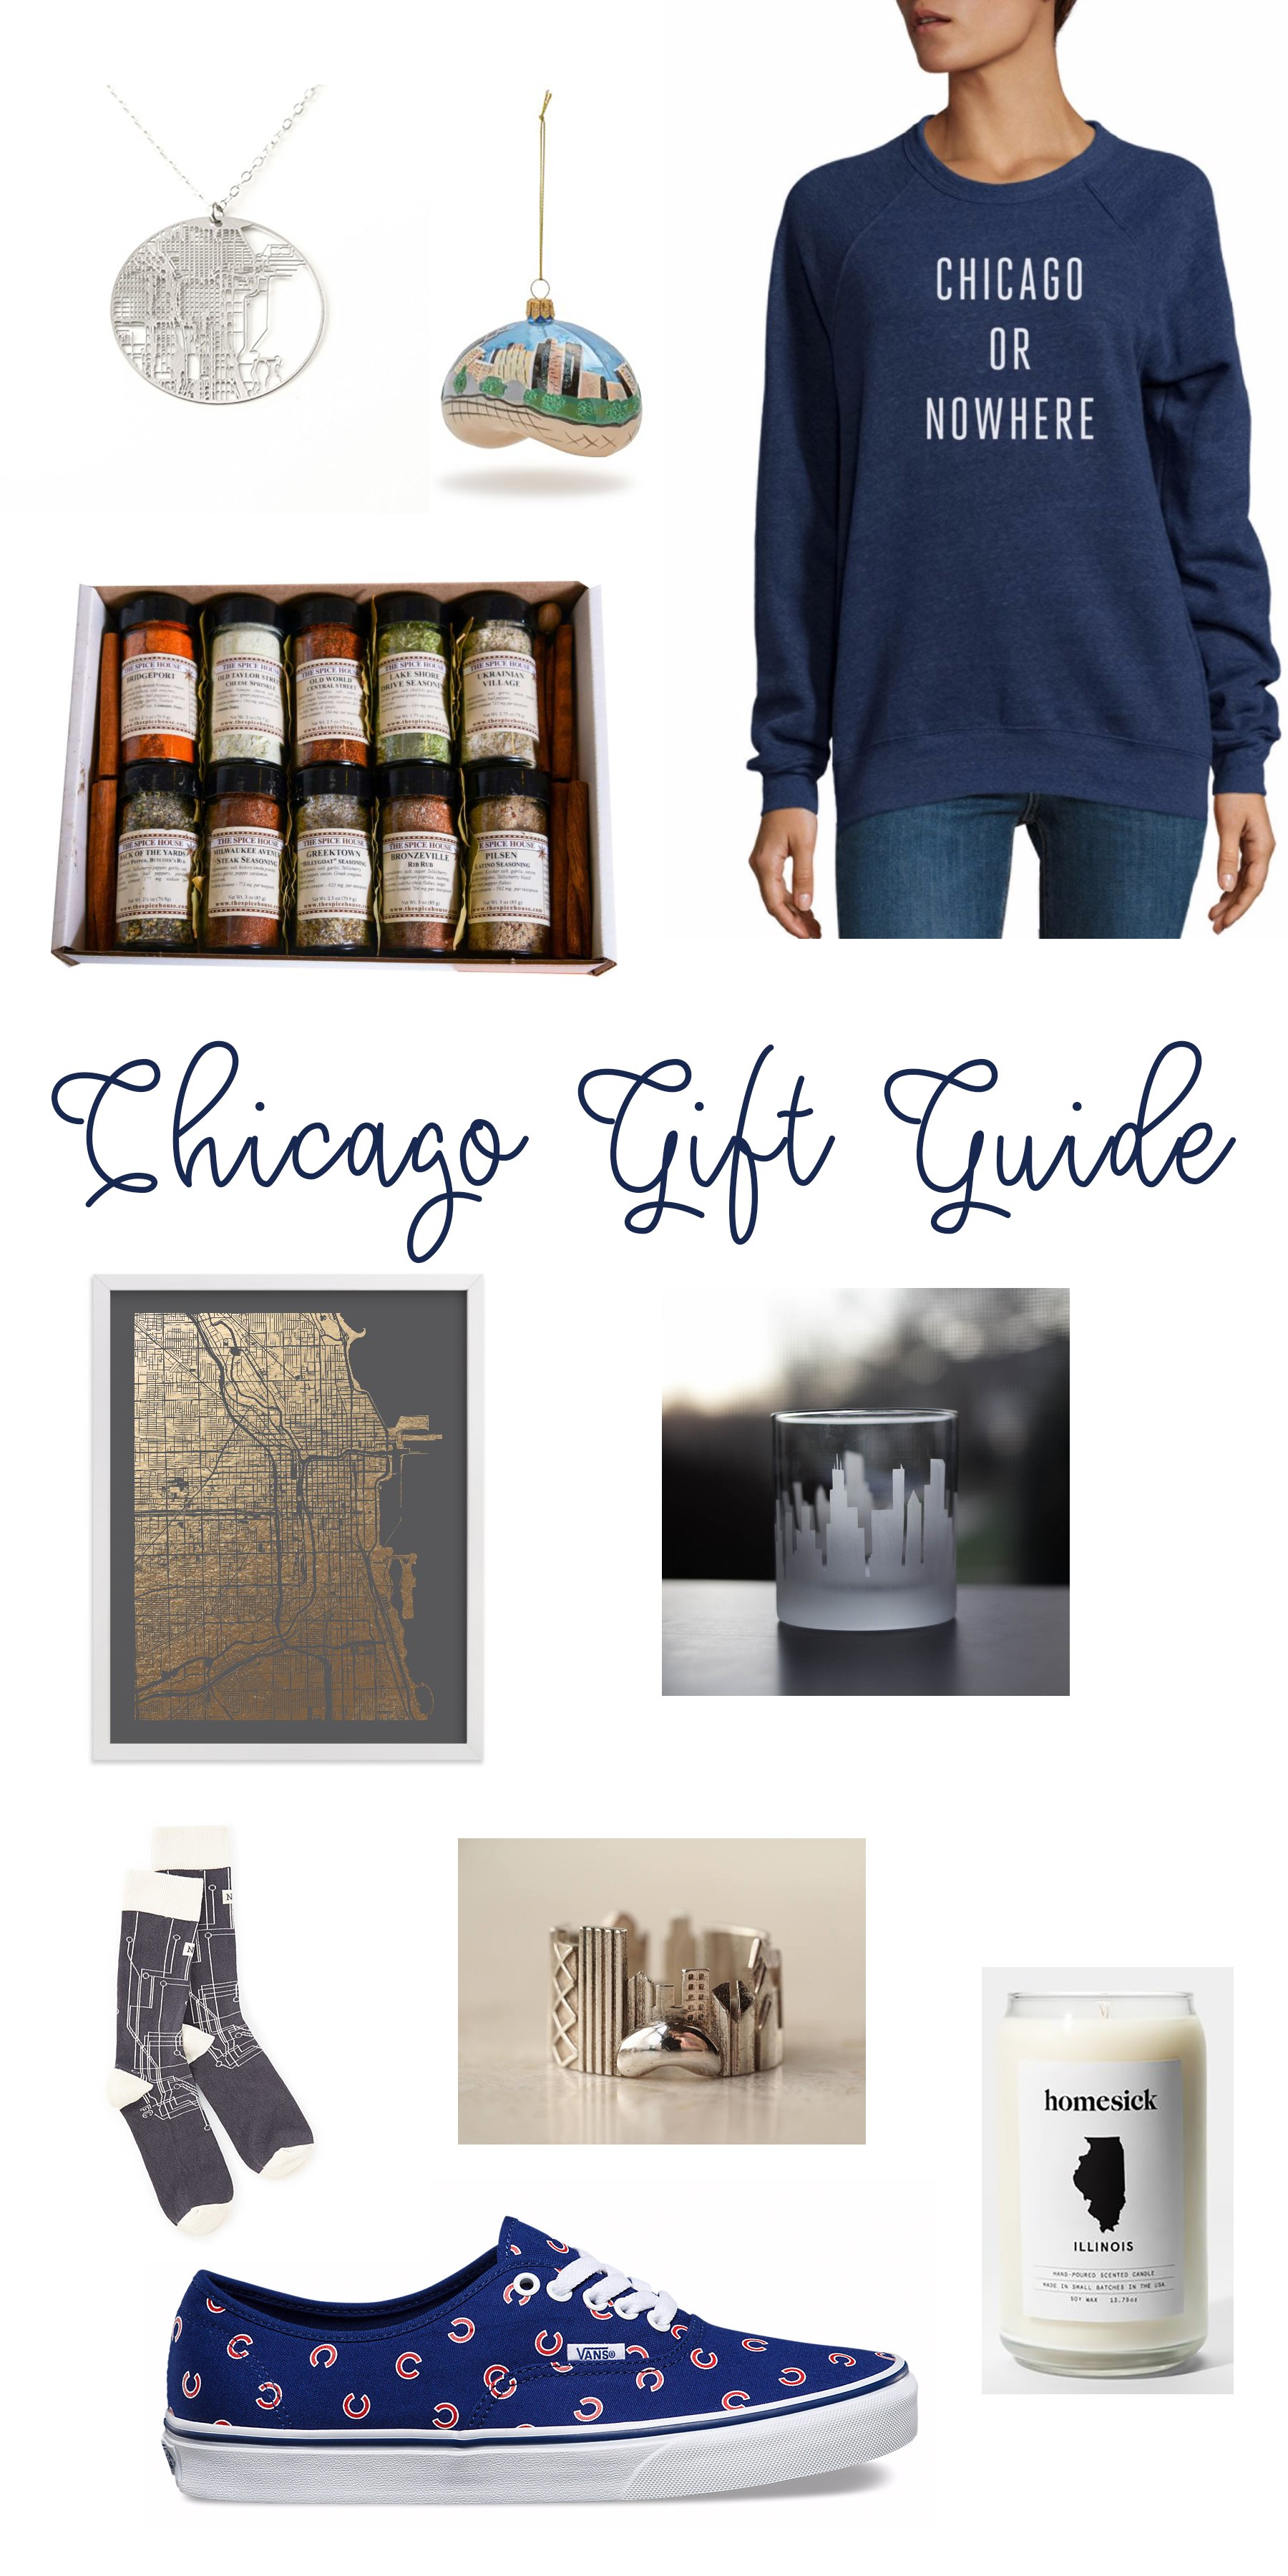 Chicago Gift Guide Gift Ideas For Chicago Lovers By 312food